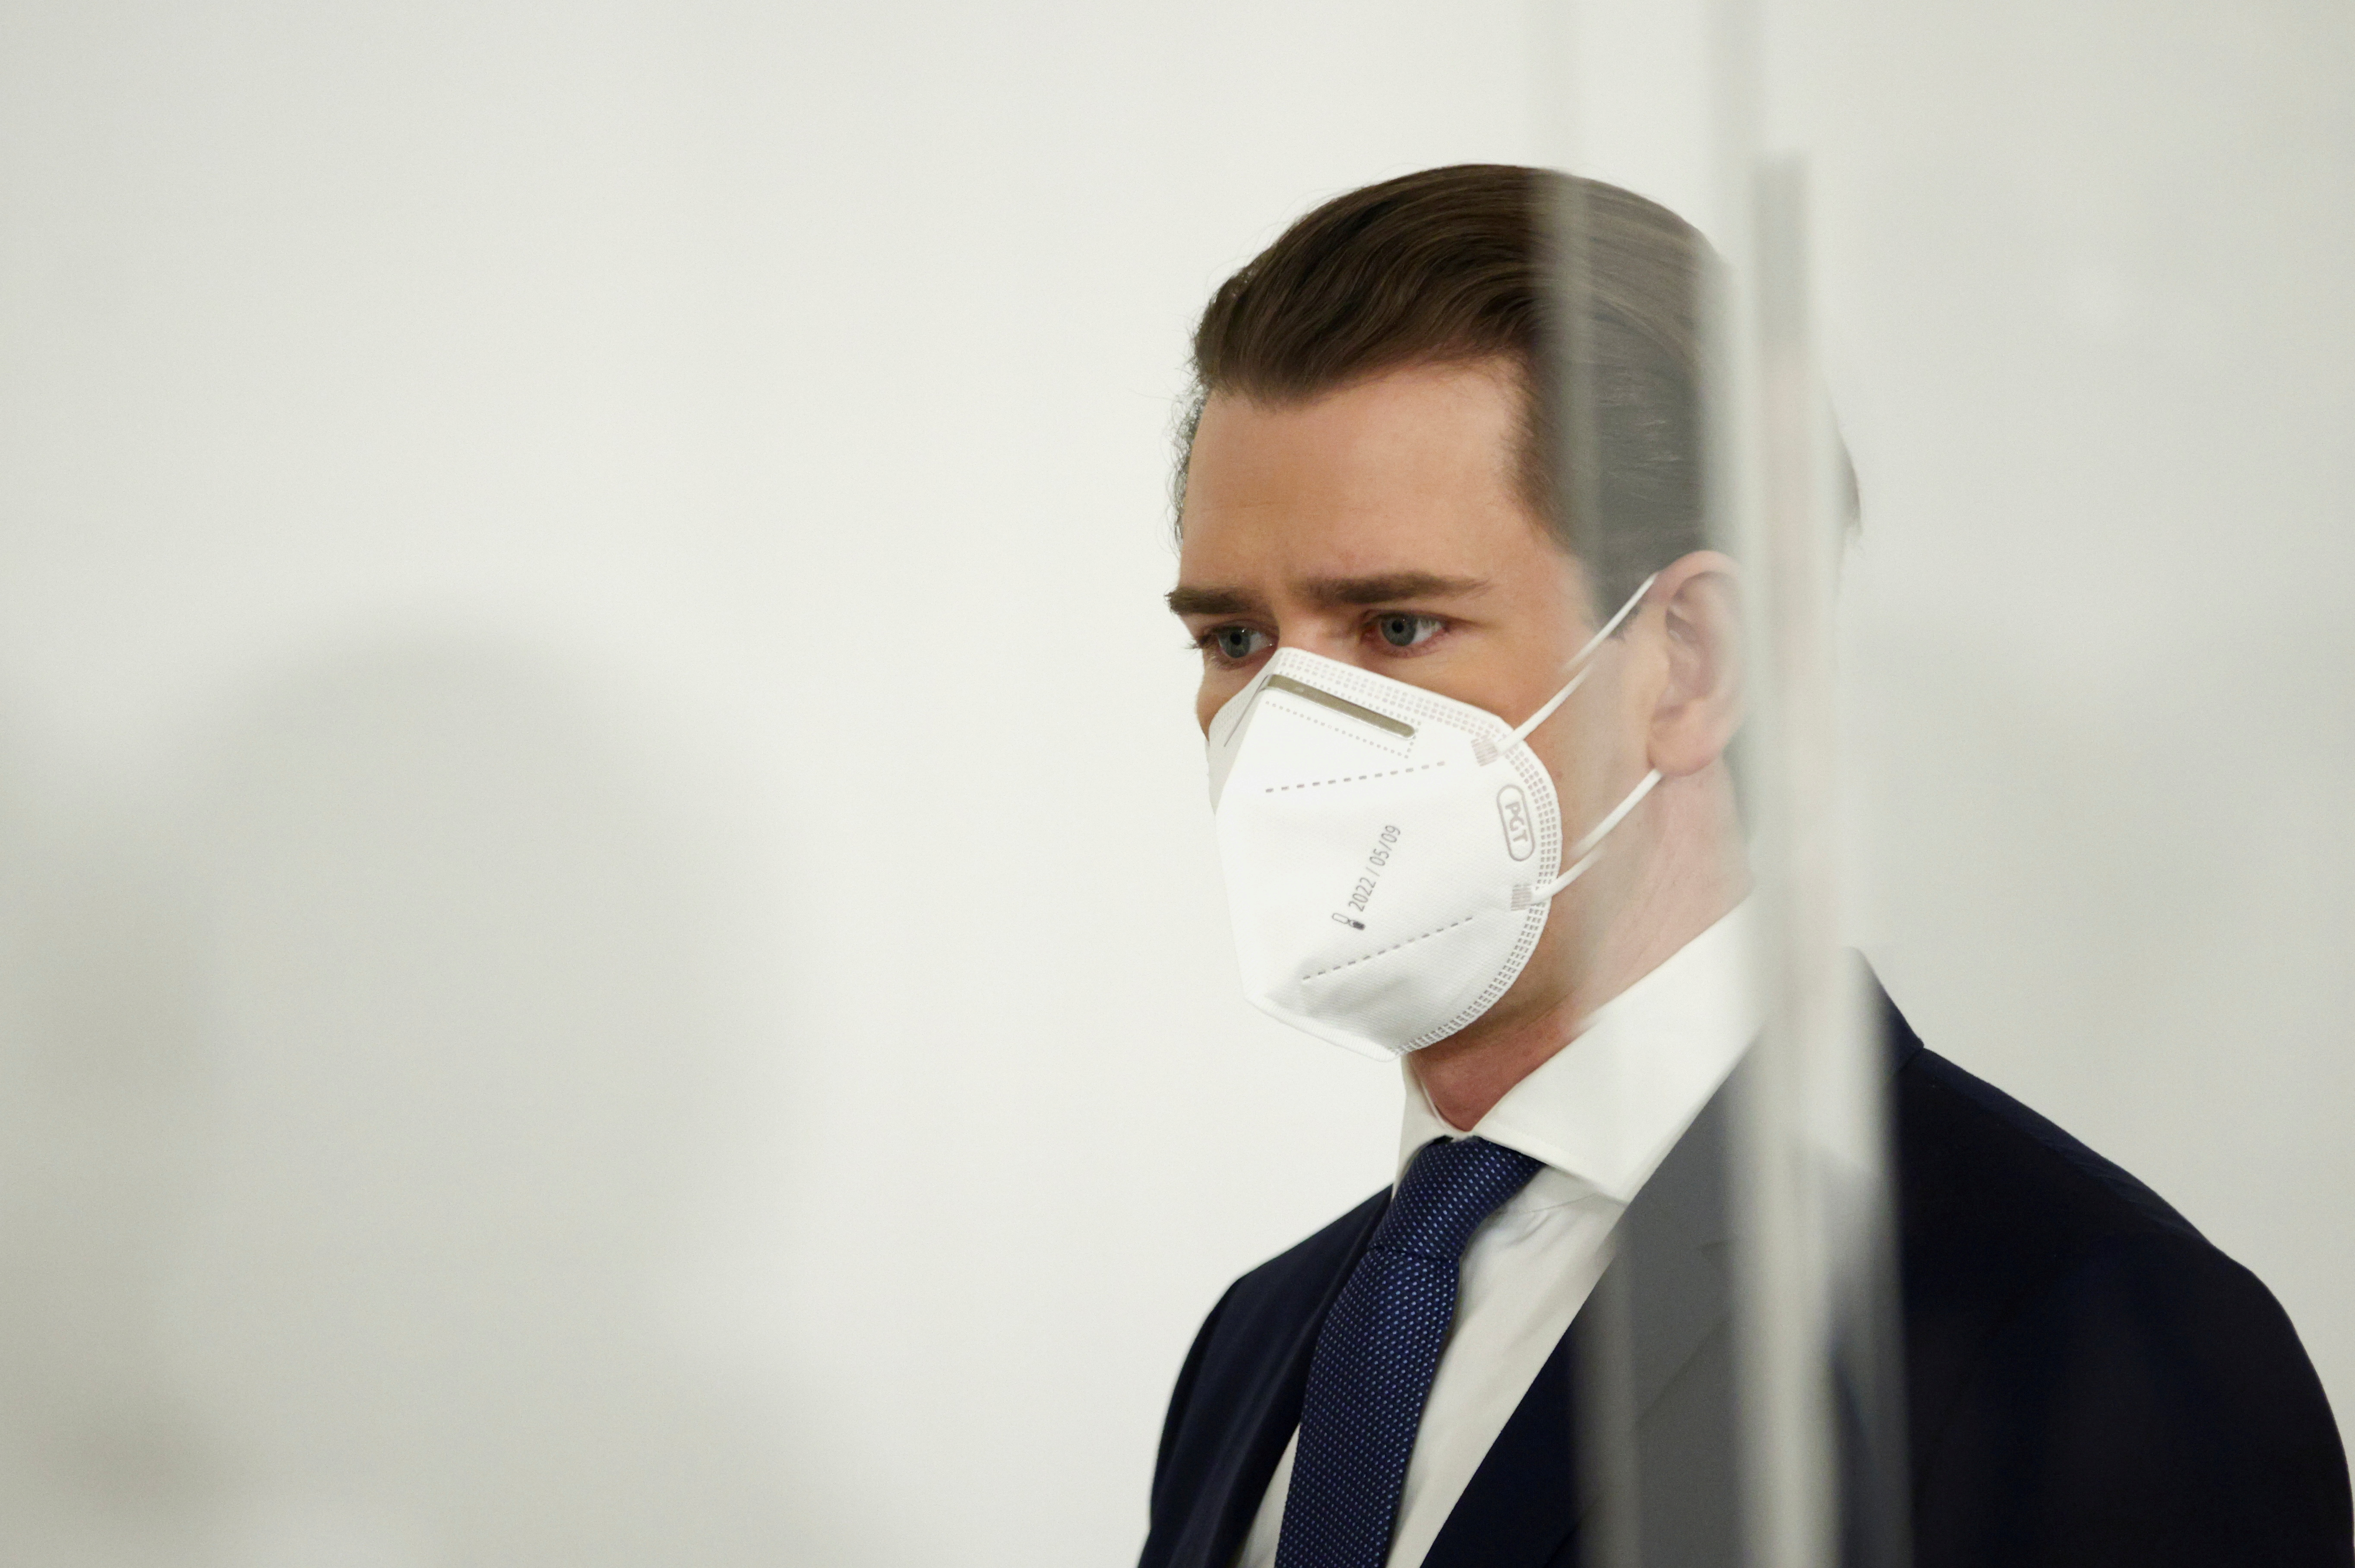 Austria's Chancellor Sebastian Kurz attends a news conference, as the spread of the coronavirus disease (COVID-19) continues, in Vienna, Austria March 1, 2021. REUTERS/Lisi Niesner